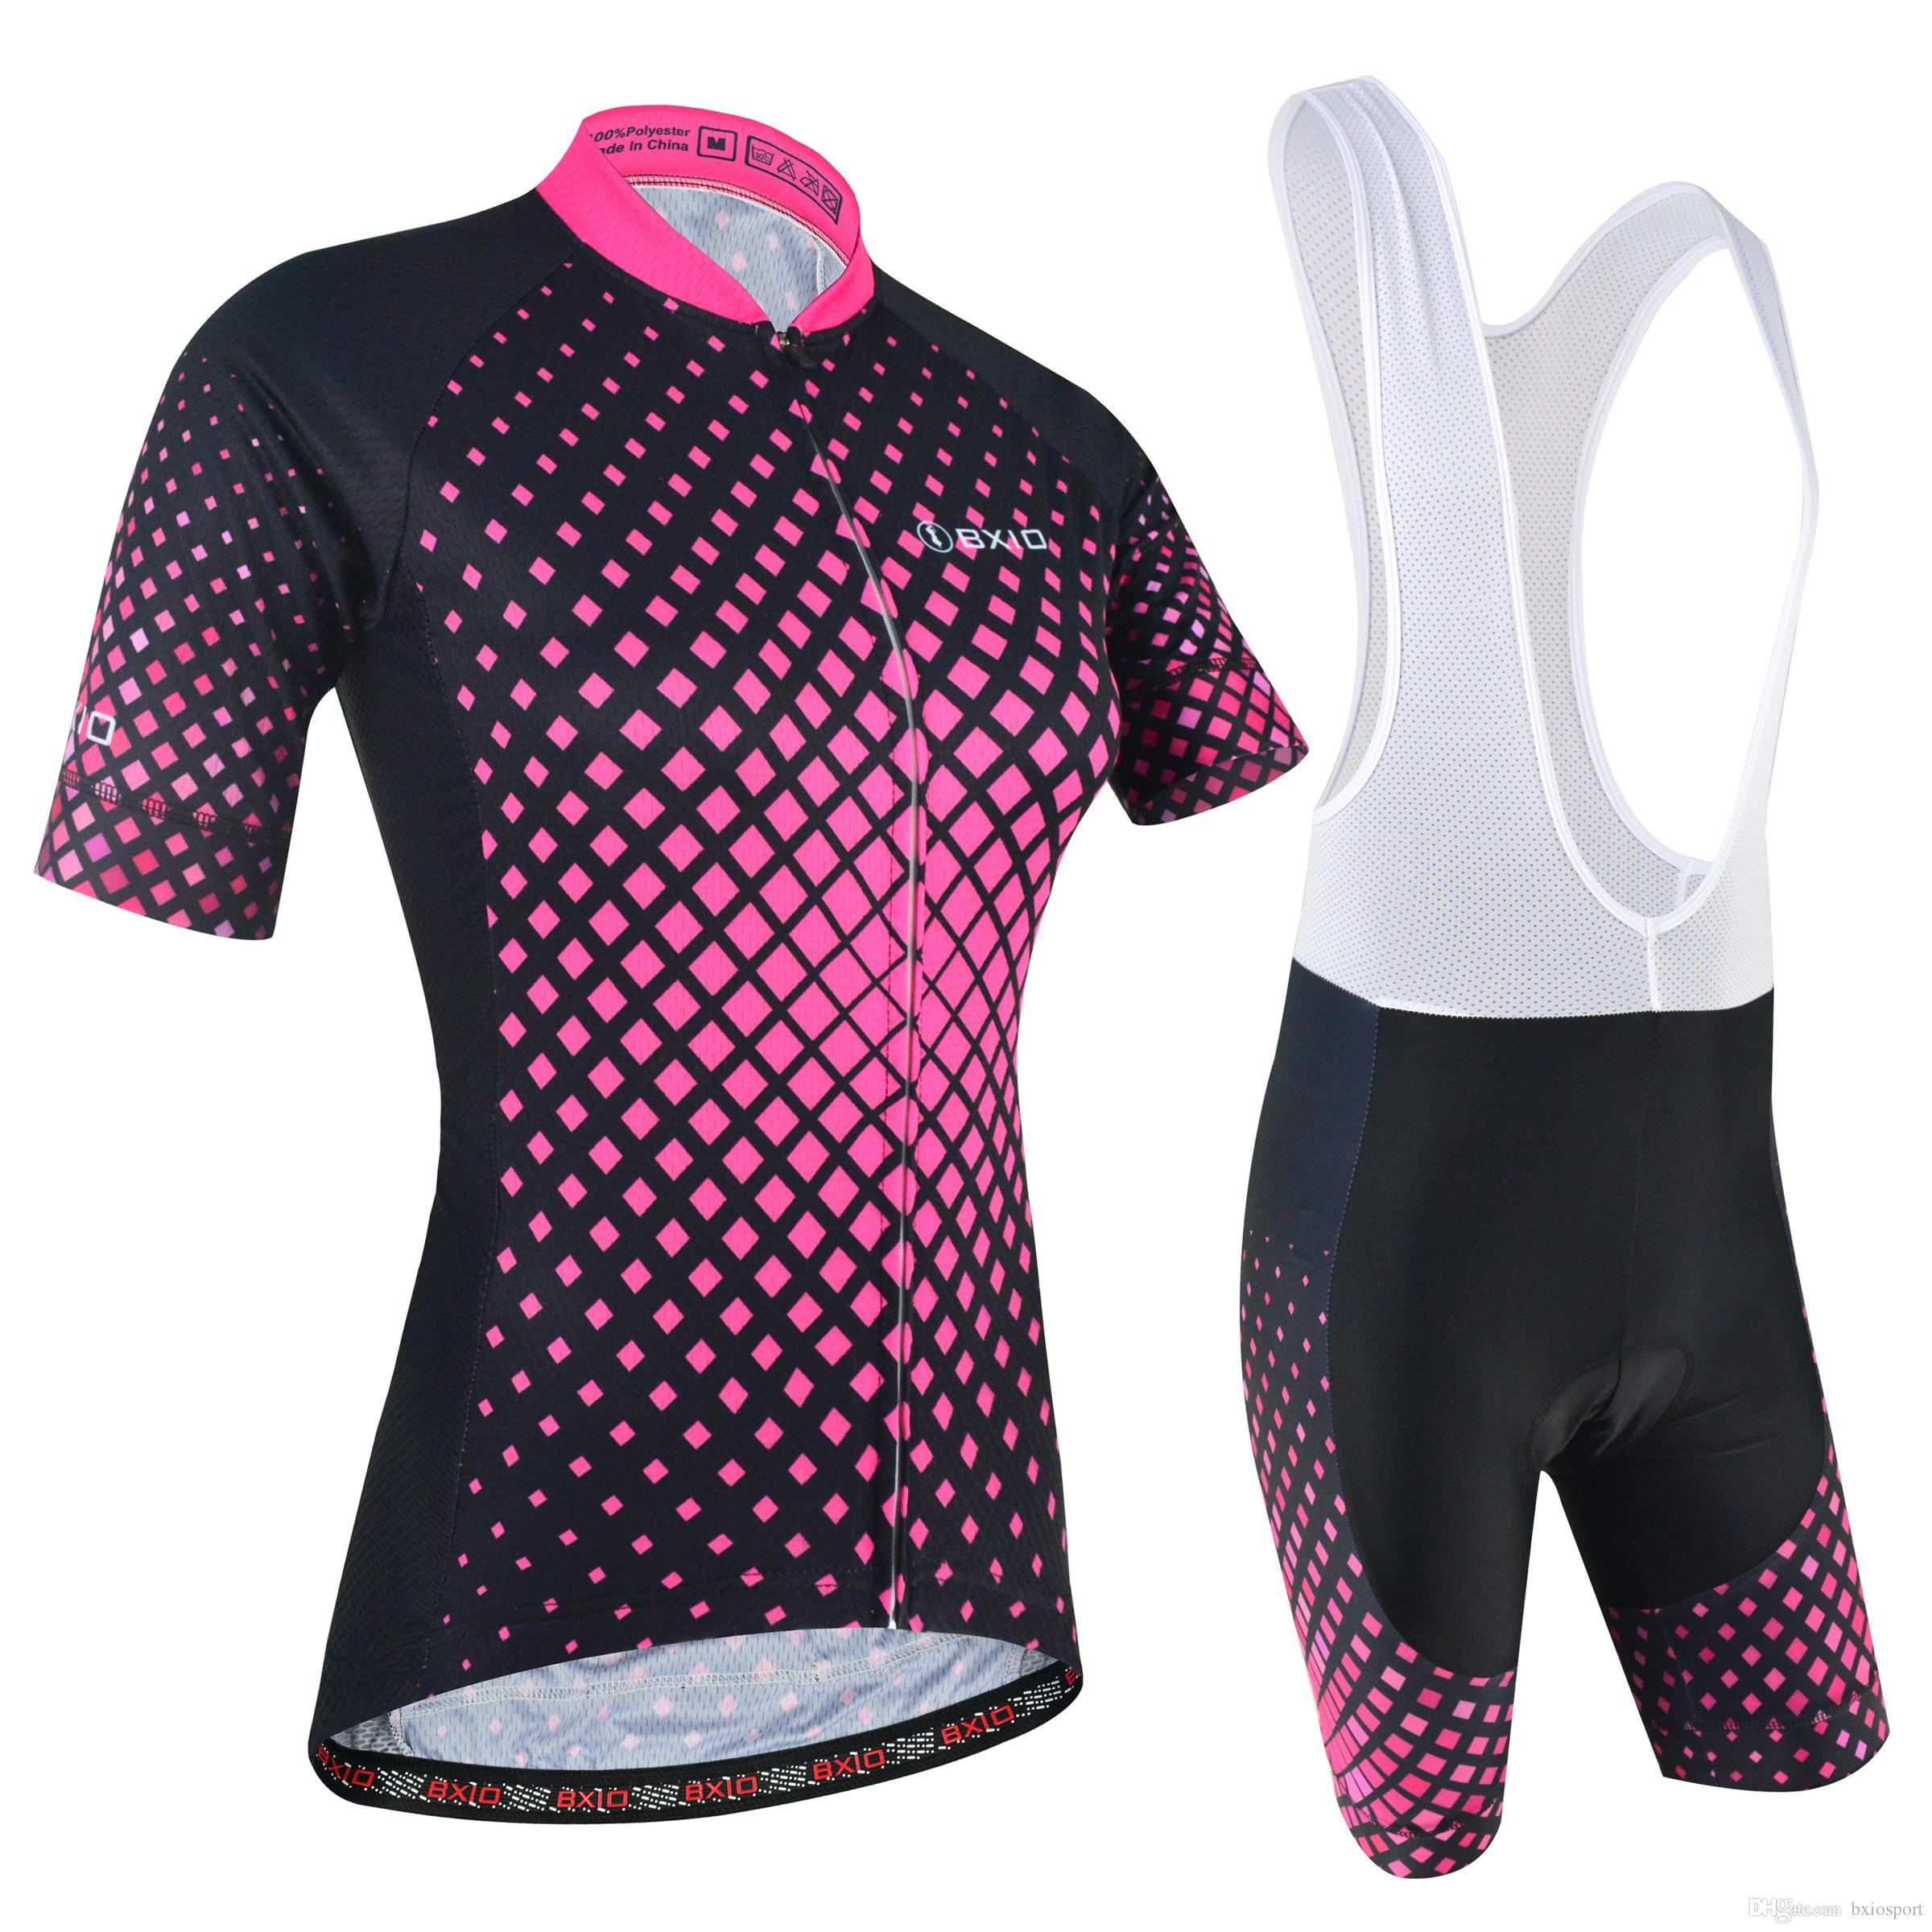 2018 BXIO Brand Cycling Jersey Women Two Side Pineapple Breathable Mesh Bike  Clothing Summer Bicycle Clothing Mujeres Ropa Ciclismo BX 177 Cycling  Shorts ... 437c5ffed